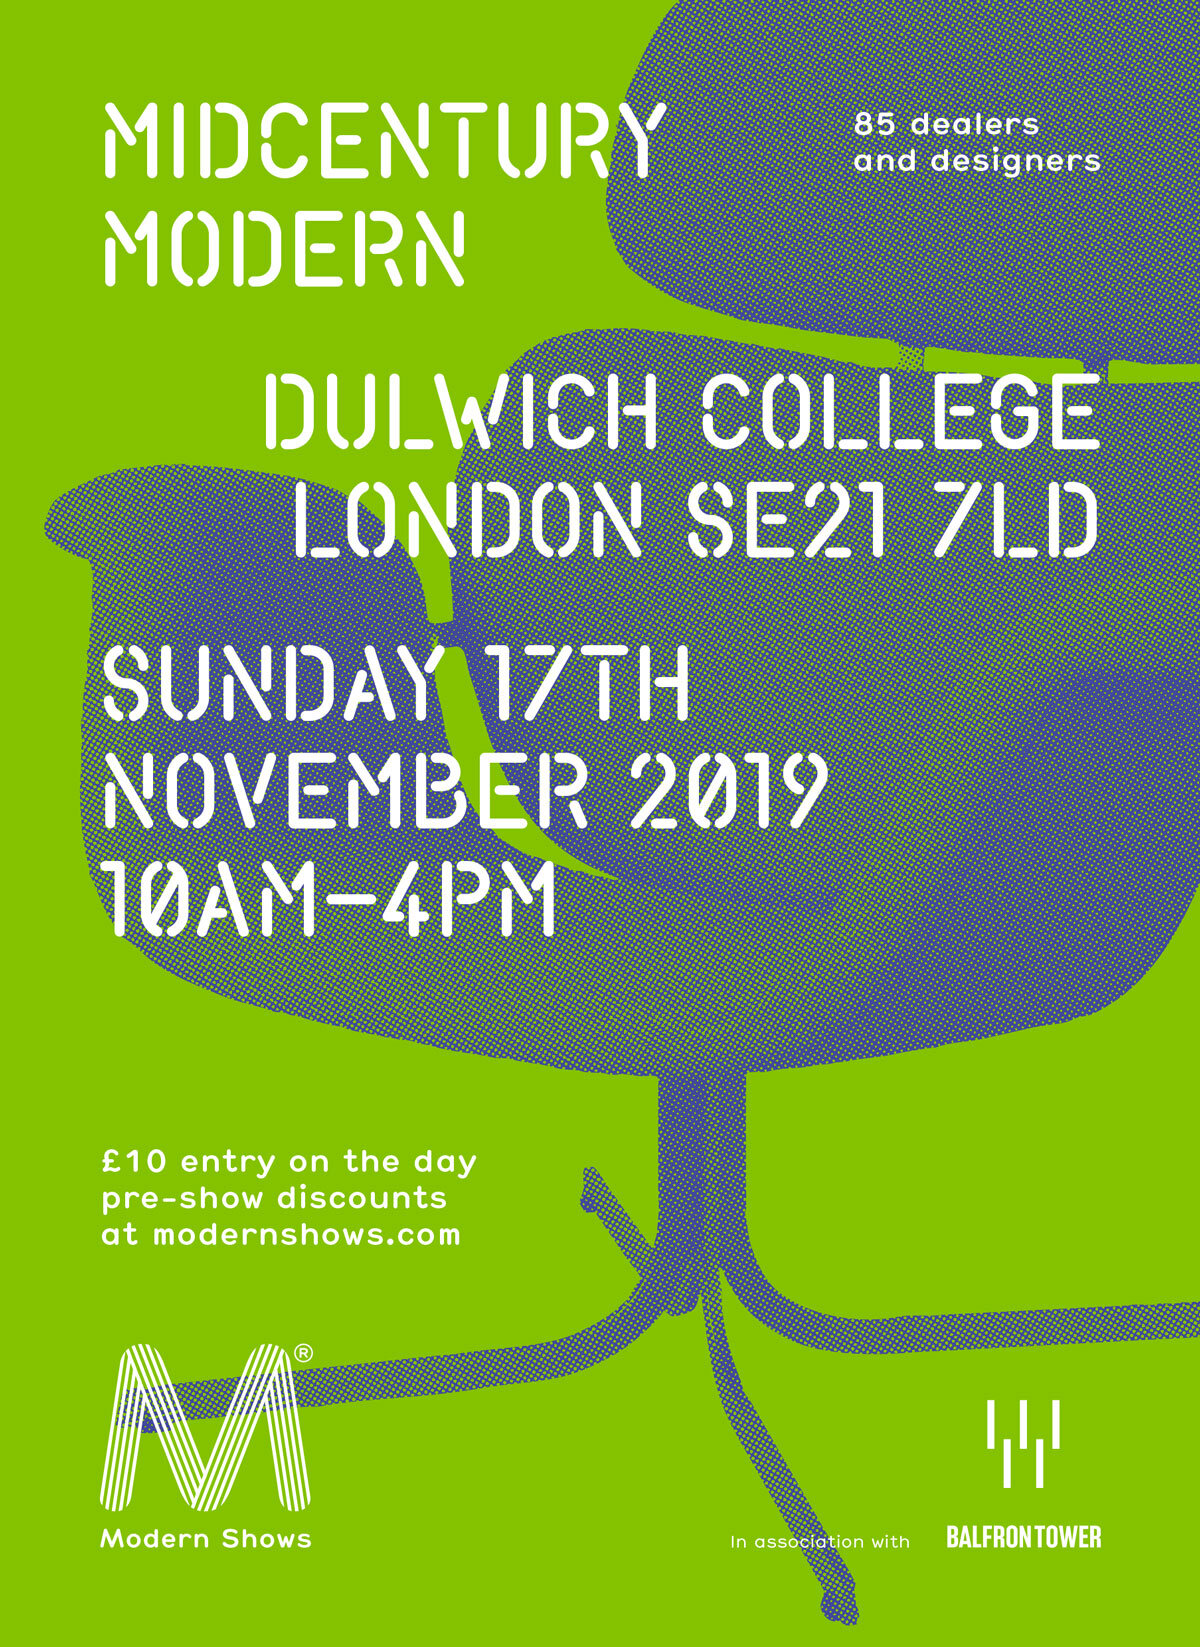 - POPPY WILL BE RETURNING TO EXHIBIT AT THE WONDERFUL MIDCENTURY MODERN SHOW, TAKING PLACE AT DULWICH COLLEGE ON SUNDAY 17TH NOVEMBER 2019.AN INSPIRING MIX OF MIDCENTURY FURNITURE AND COLLECTIBLES, COMBINED WITH A COMPLIMENTARY SELECTION OF CONTEMPORARY DESIGN.FOR FURTHER DETAILS AND ADVANCED TICKET DISCOUNTS, (INCLUDING FREE ACCESS FOR THE FINAL HOUR OF THE SHOW) CLICK HERE. POPPY WILL BE LOCATED UPSTAIRS IN THE CONTEMPORARY ROOM.